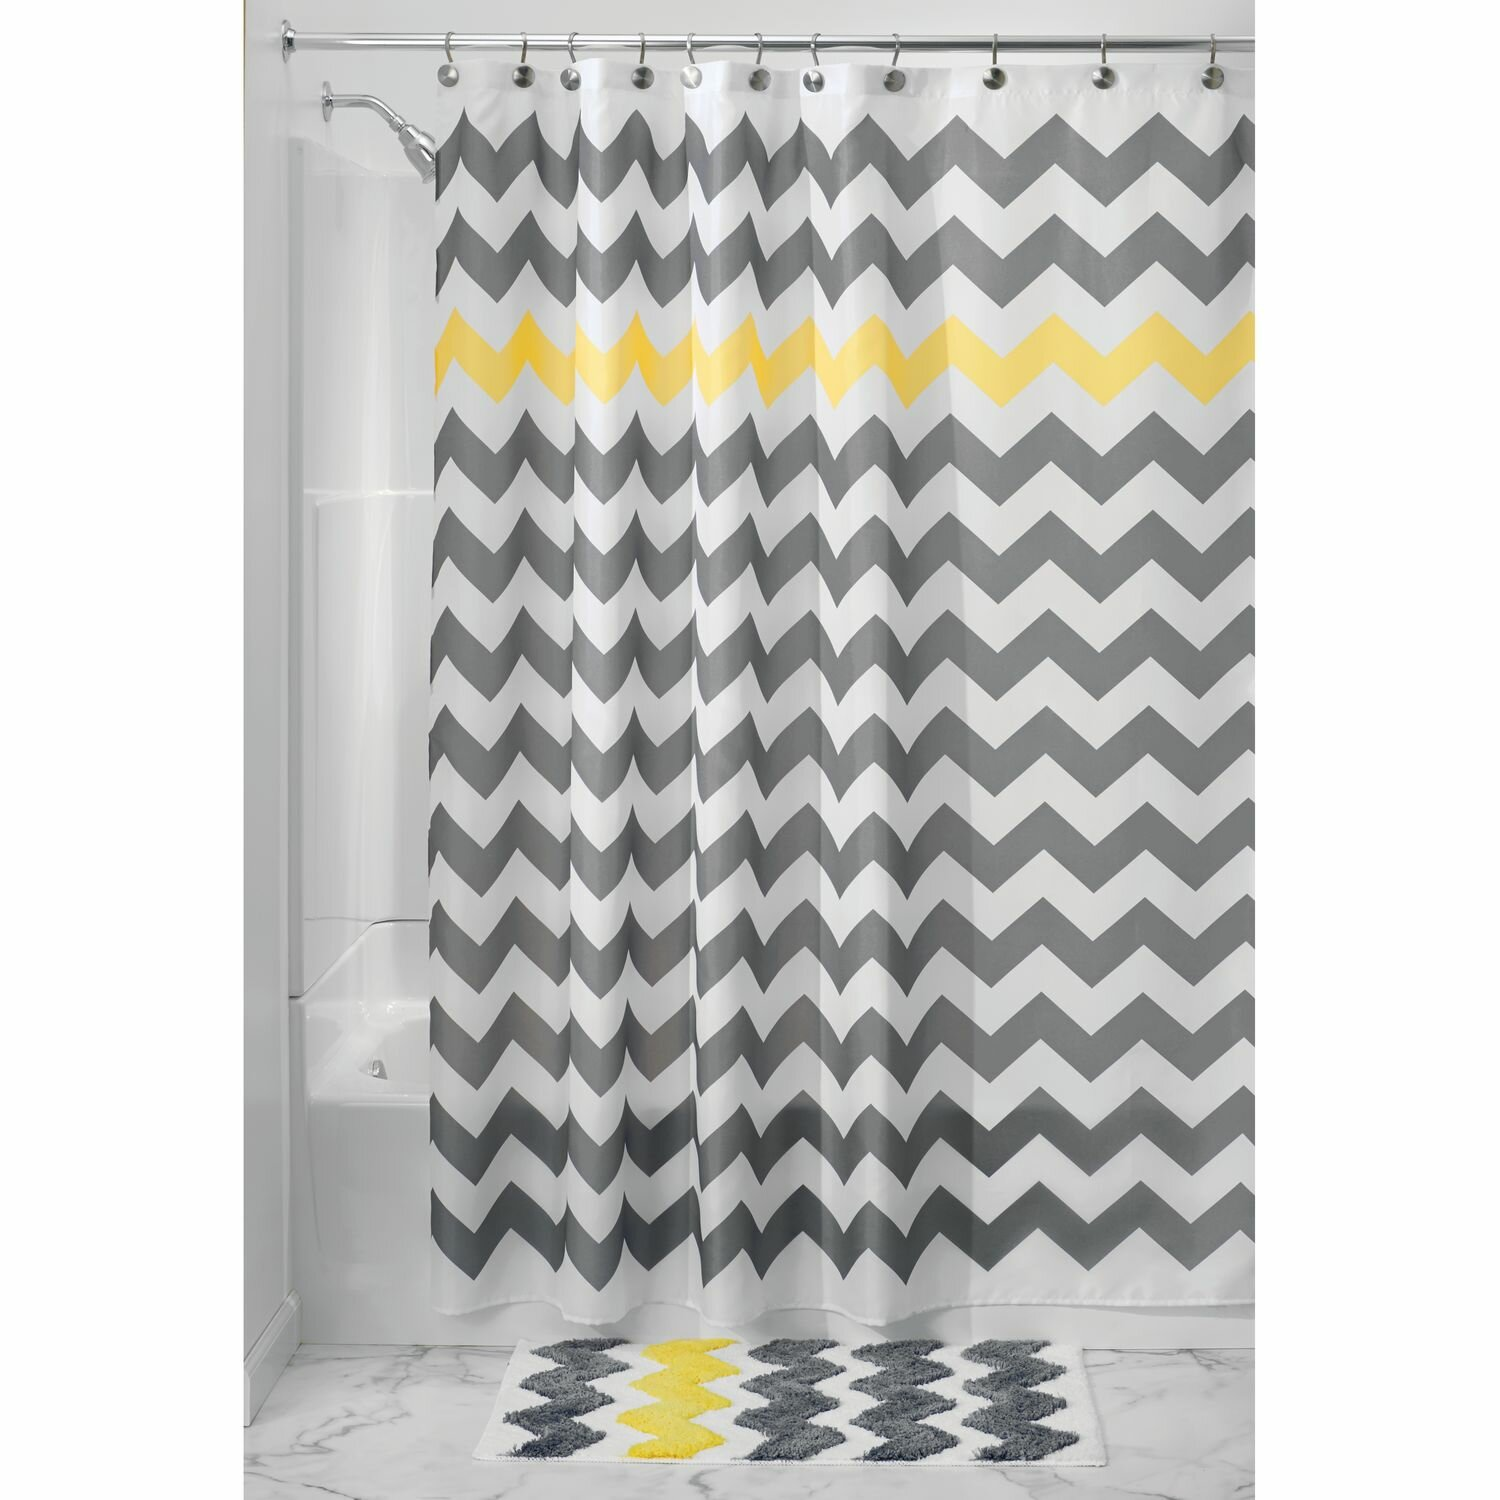 Chevron bathroom sets with shower curtain and rugs - Chevron Shower Curtain